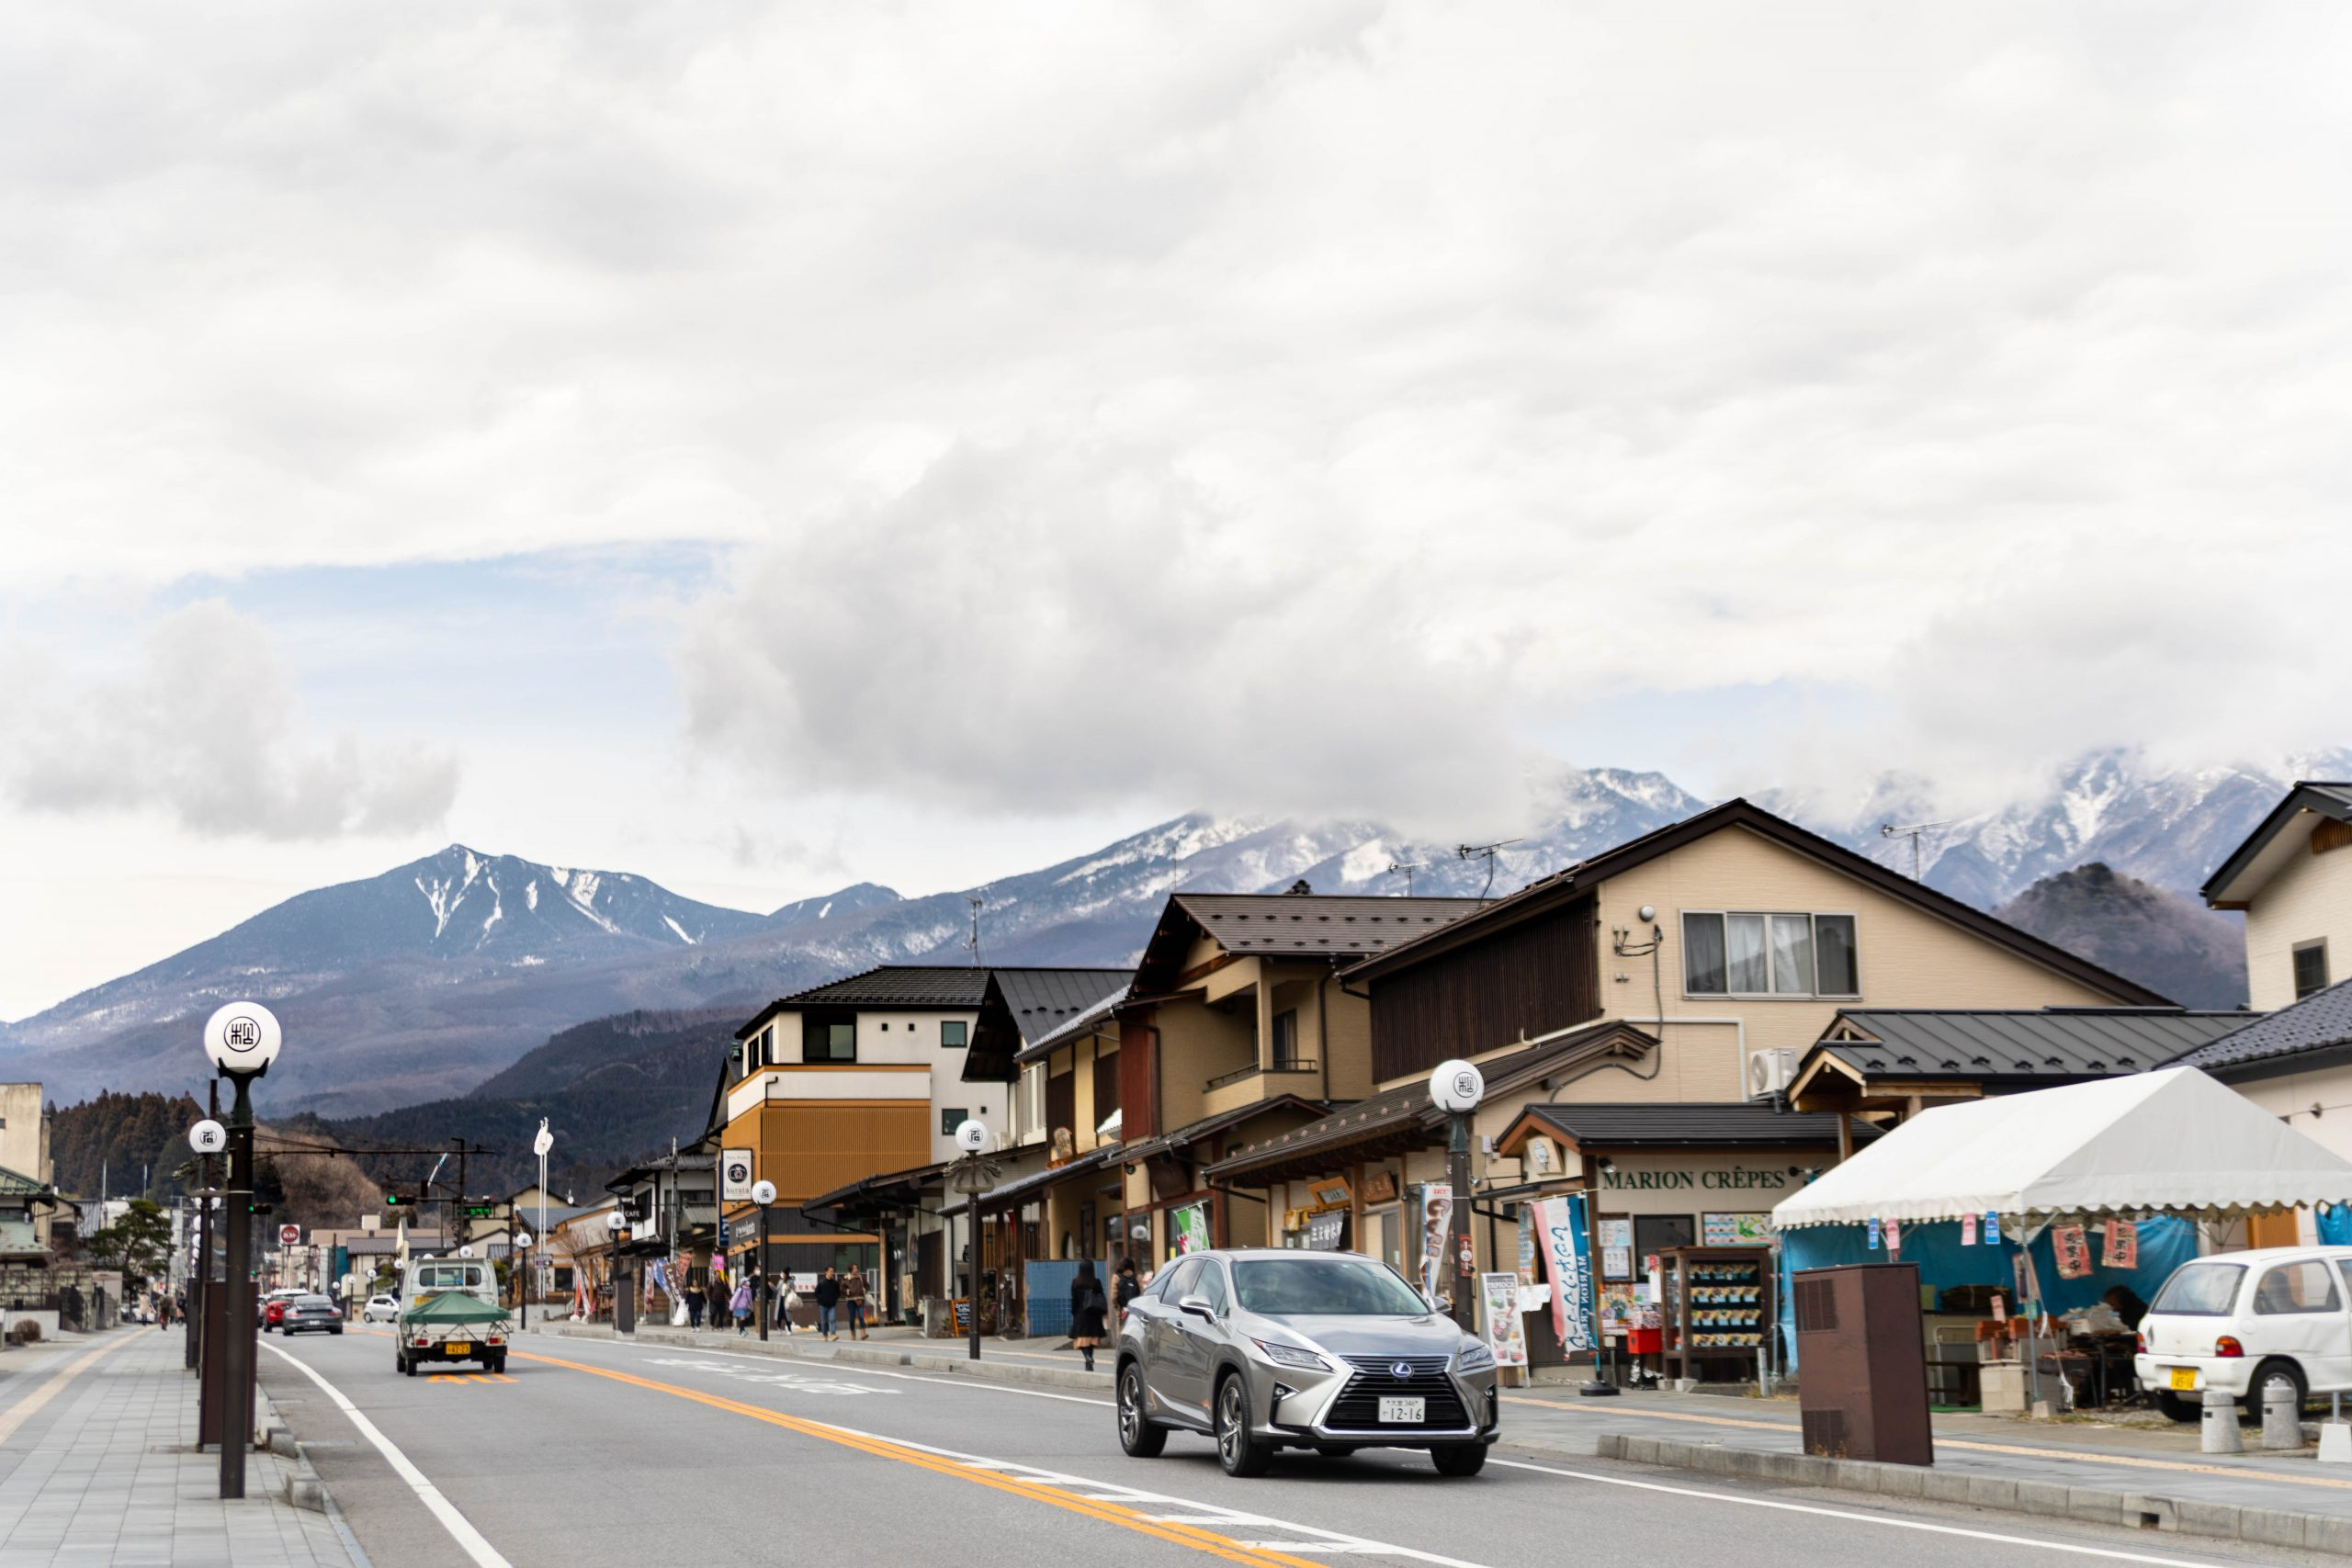 Downtown Nikko, Japan Mountain Village, the Ultimate Travel Guide Written, Researched, and Photographed by Travel Writer & Photographer Annie Fairfax